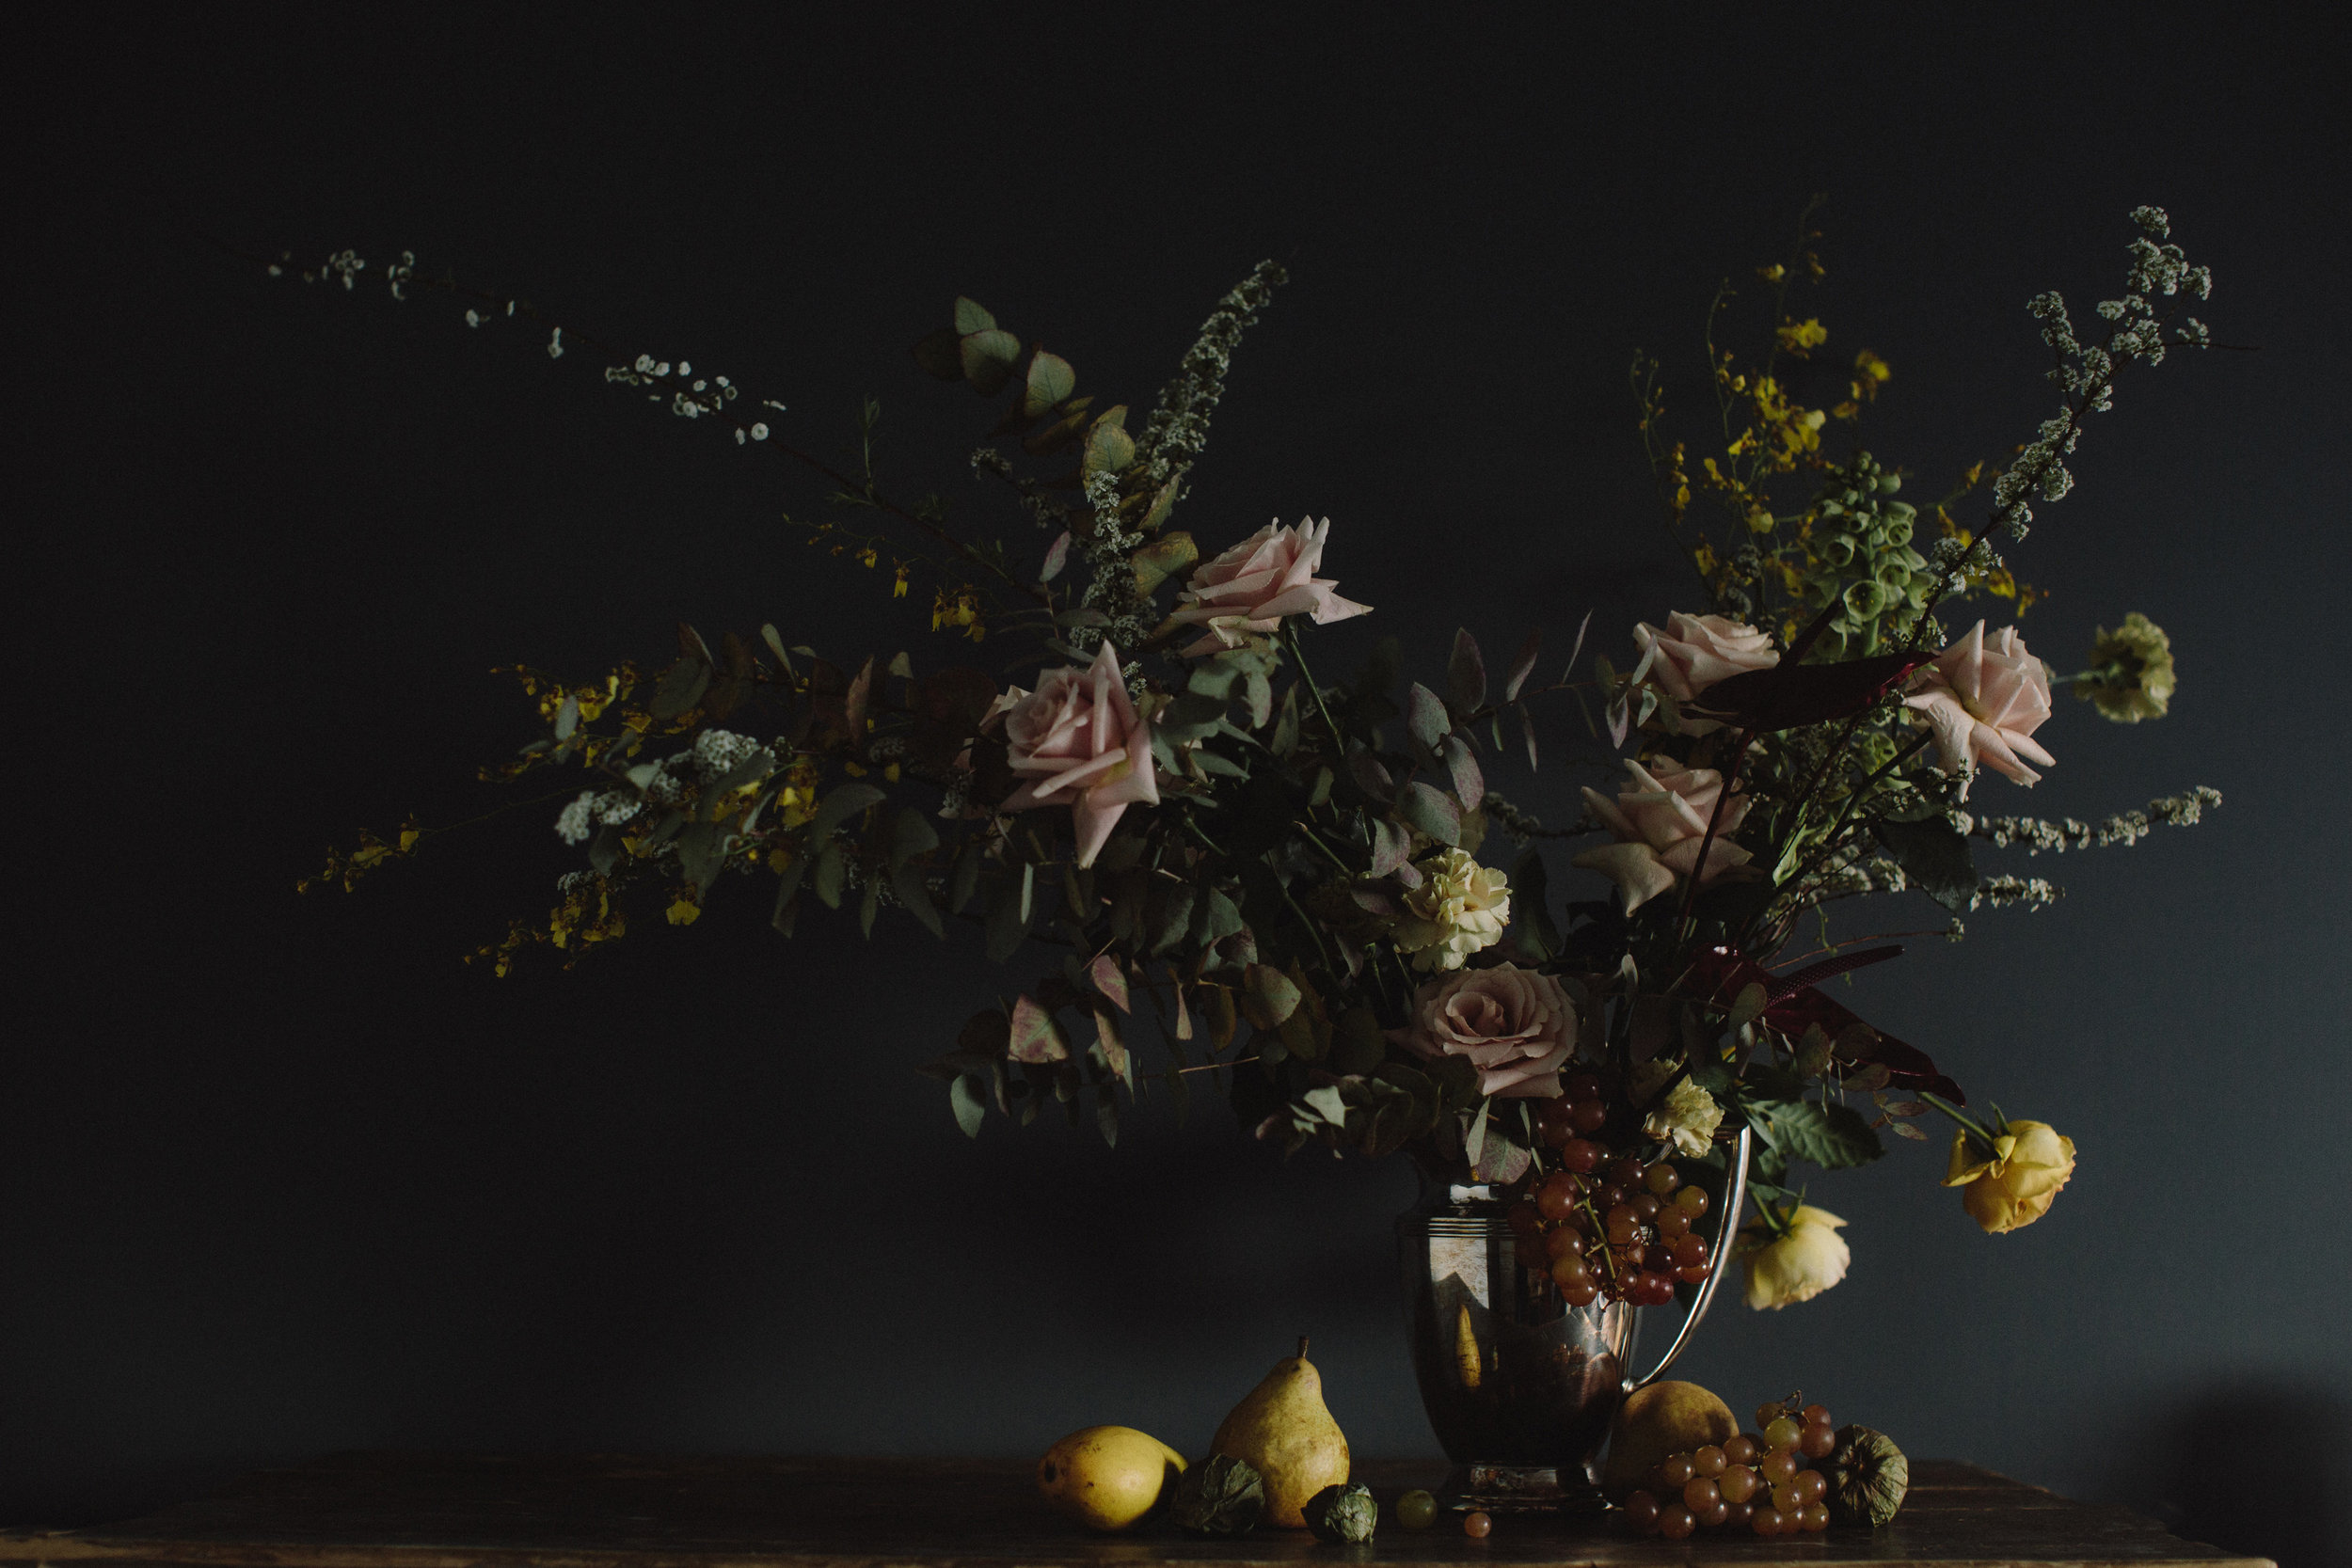 Wedding details and installations by Nectar & Root | Wedding floral design services in Burlington, Vermont (VT) | Moody dutch still life centerpiece